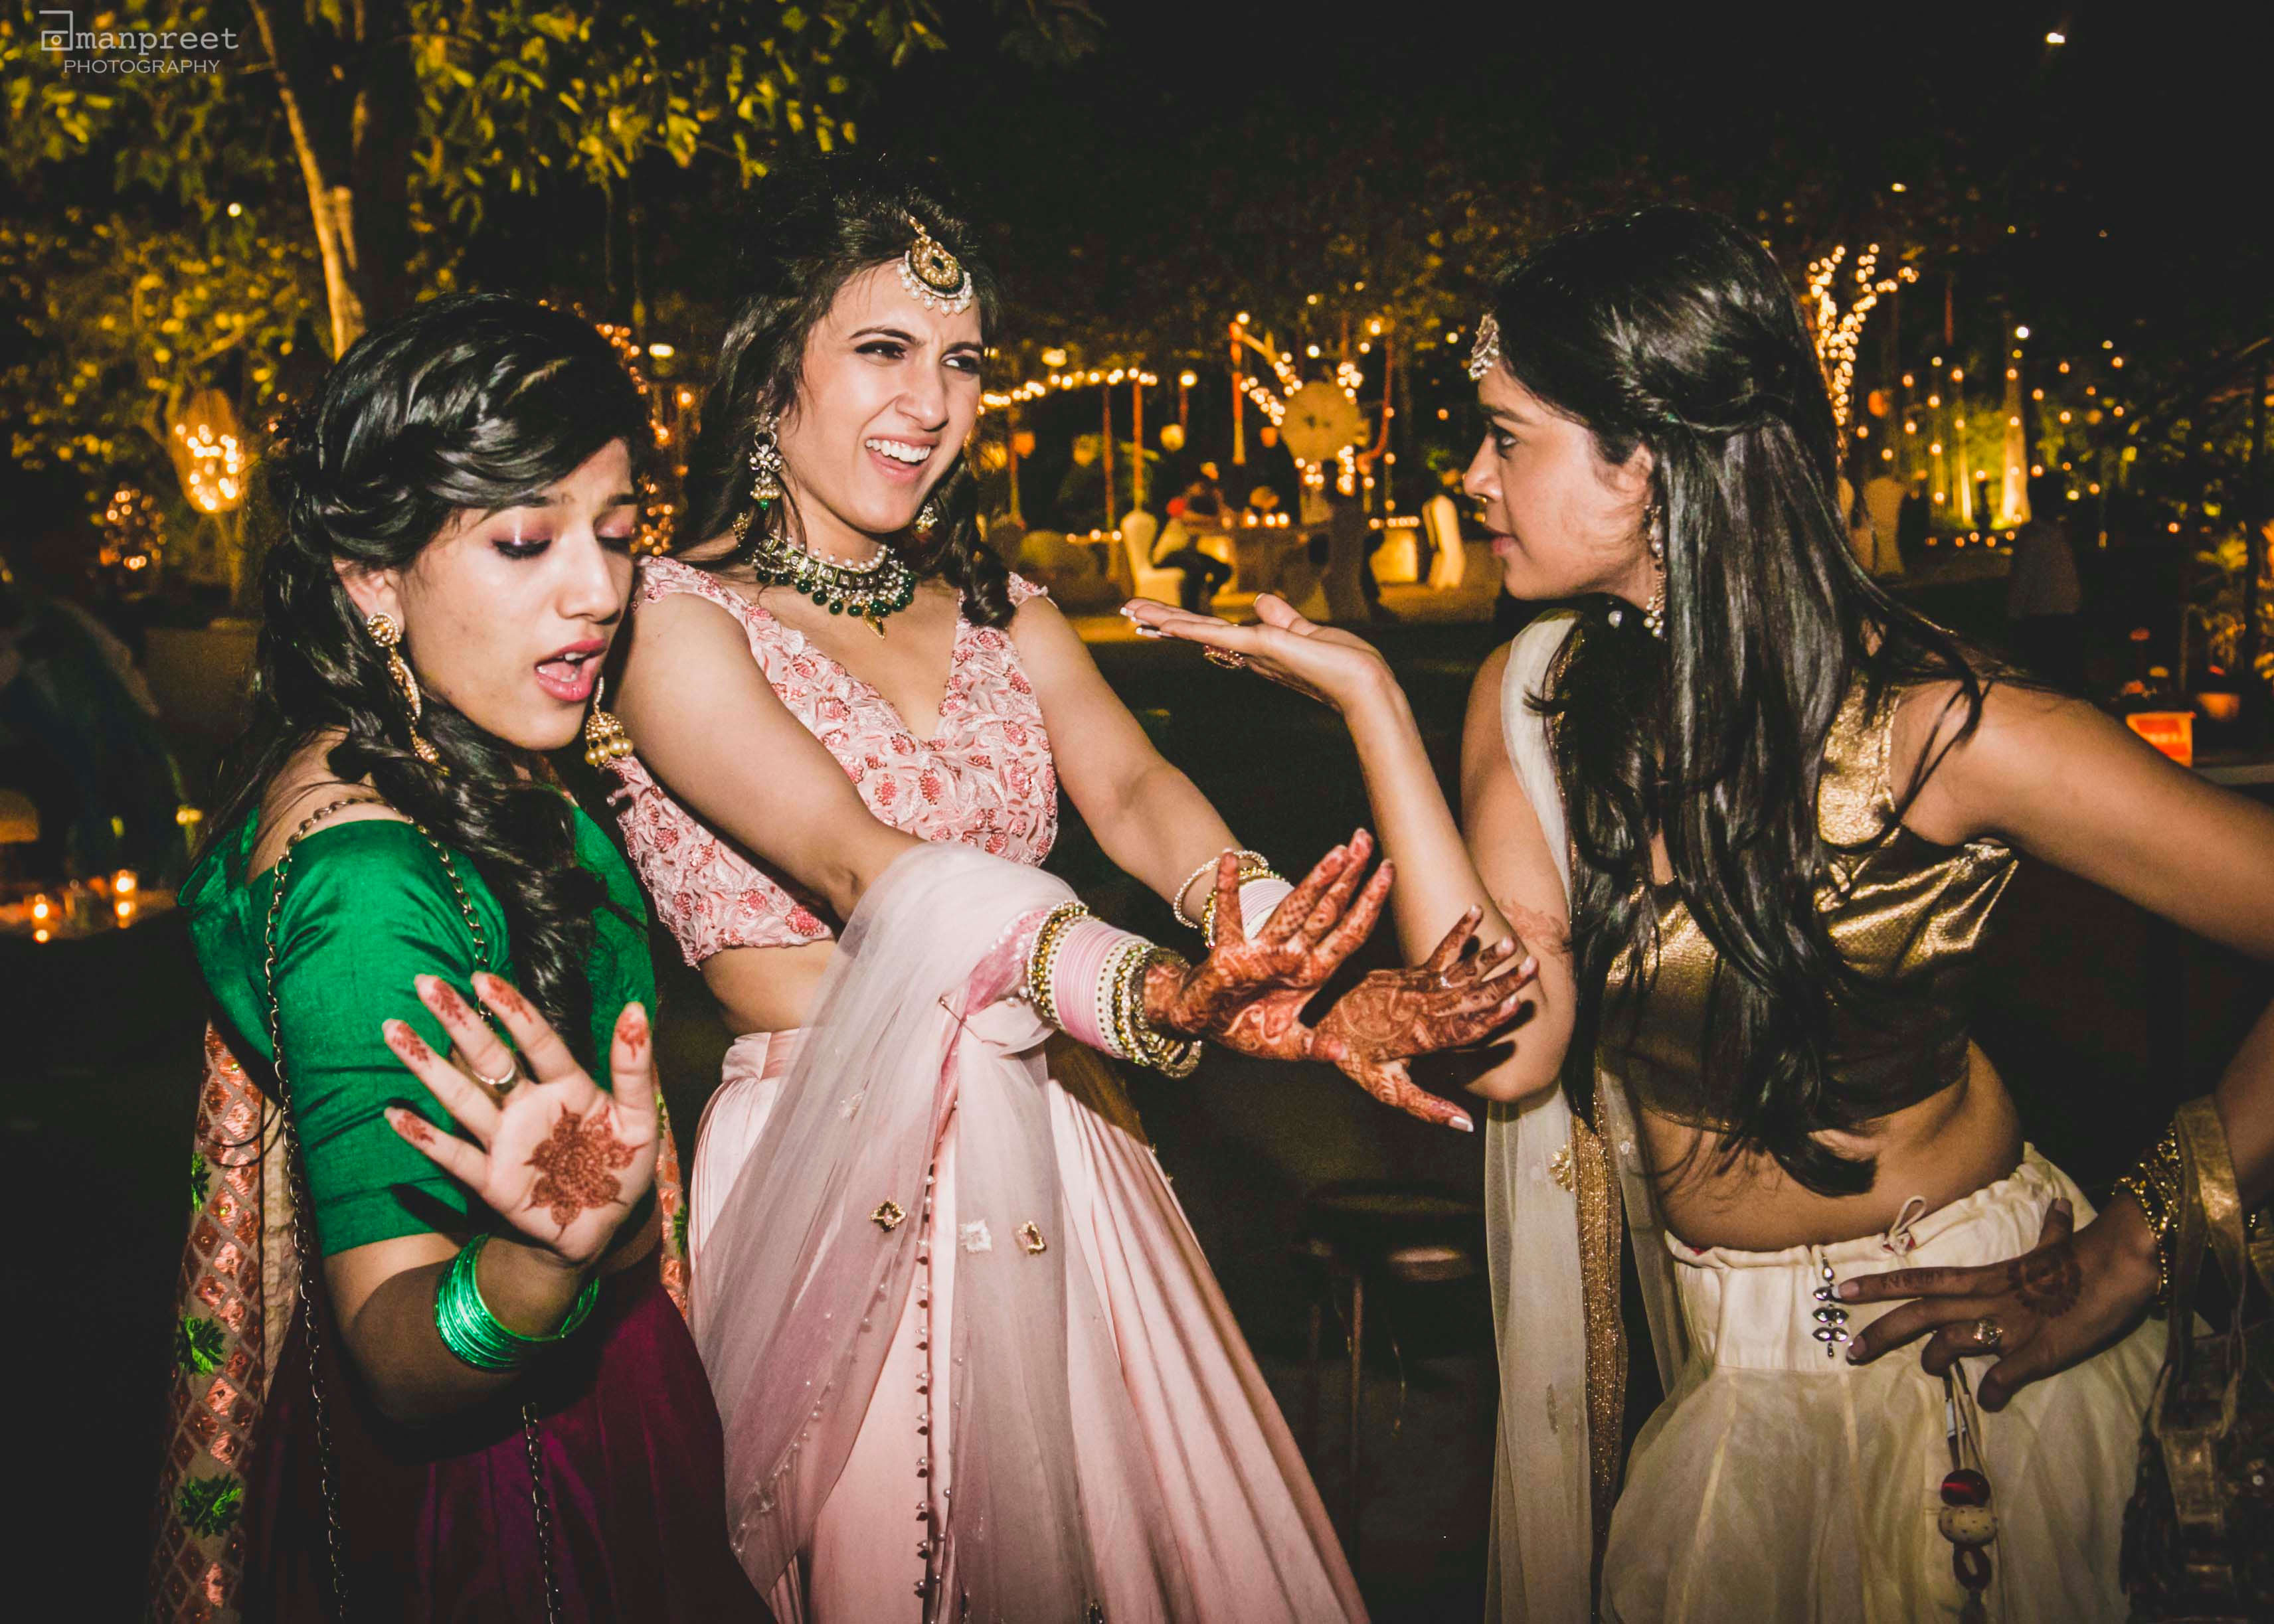 the bride!:geetanjali salon, raju mehandi wala, amanpreet photography, ole couture